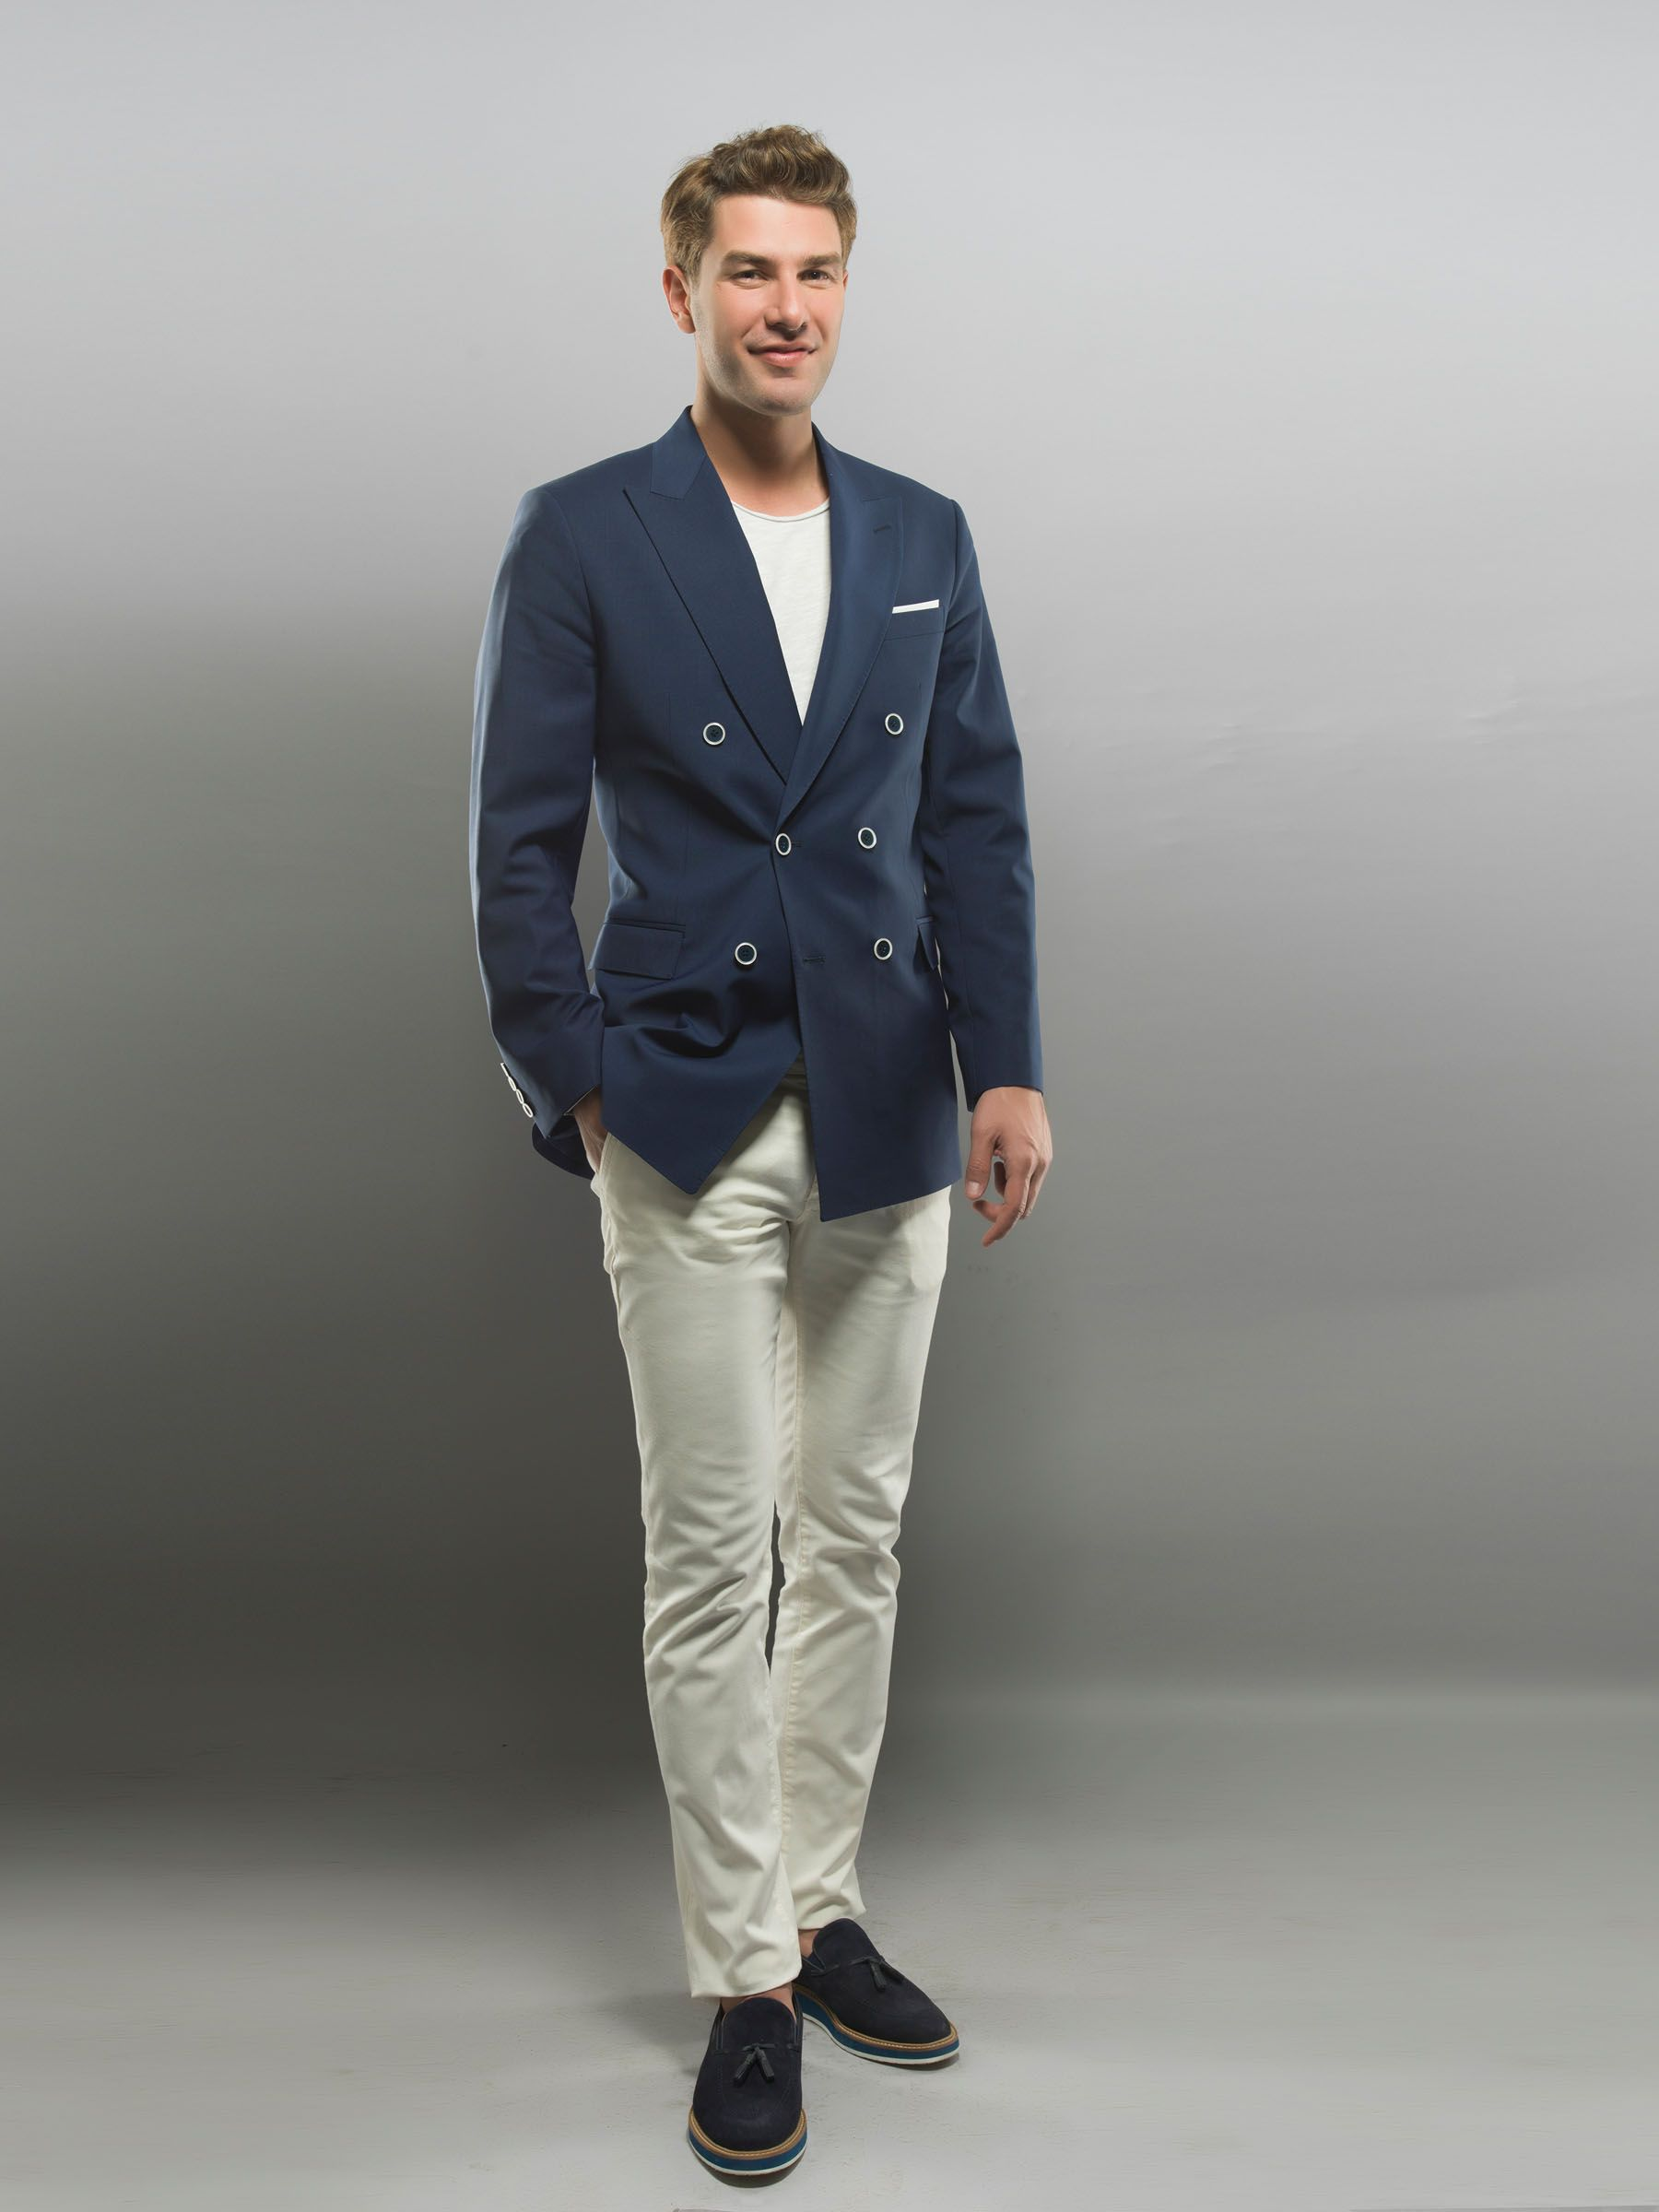 Pin By Hande Ercel On No 309 Fashion Mens Fashion Double Breasted Suit Jacket